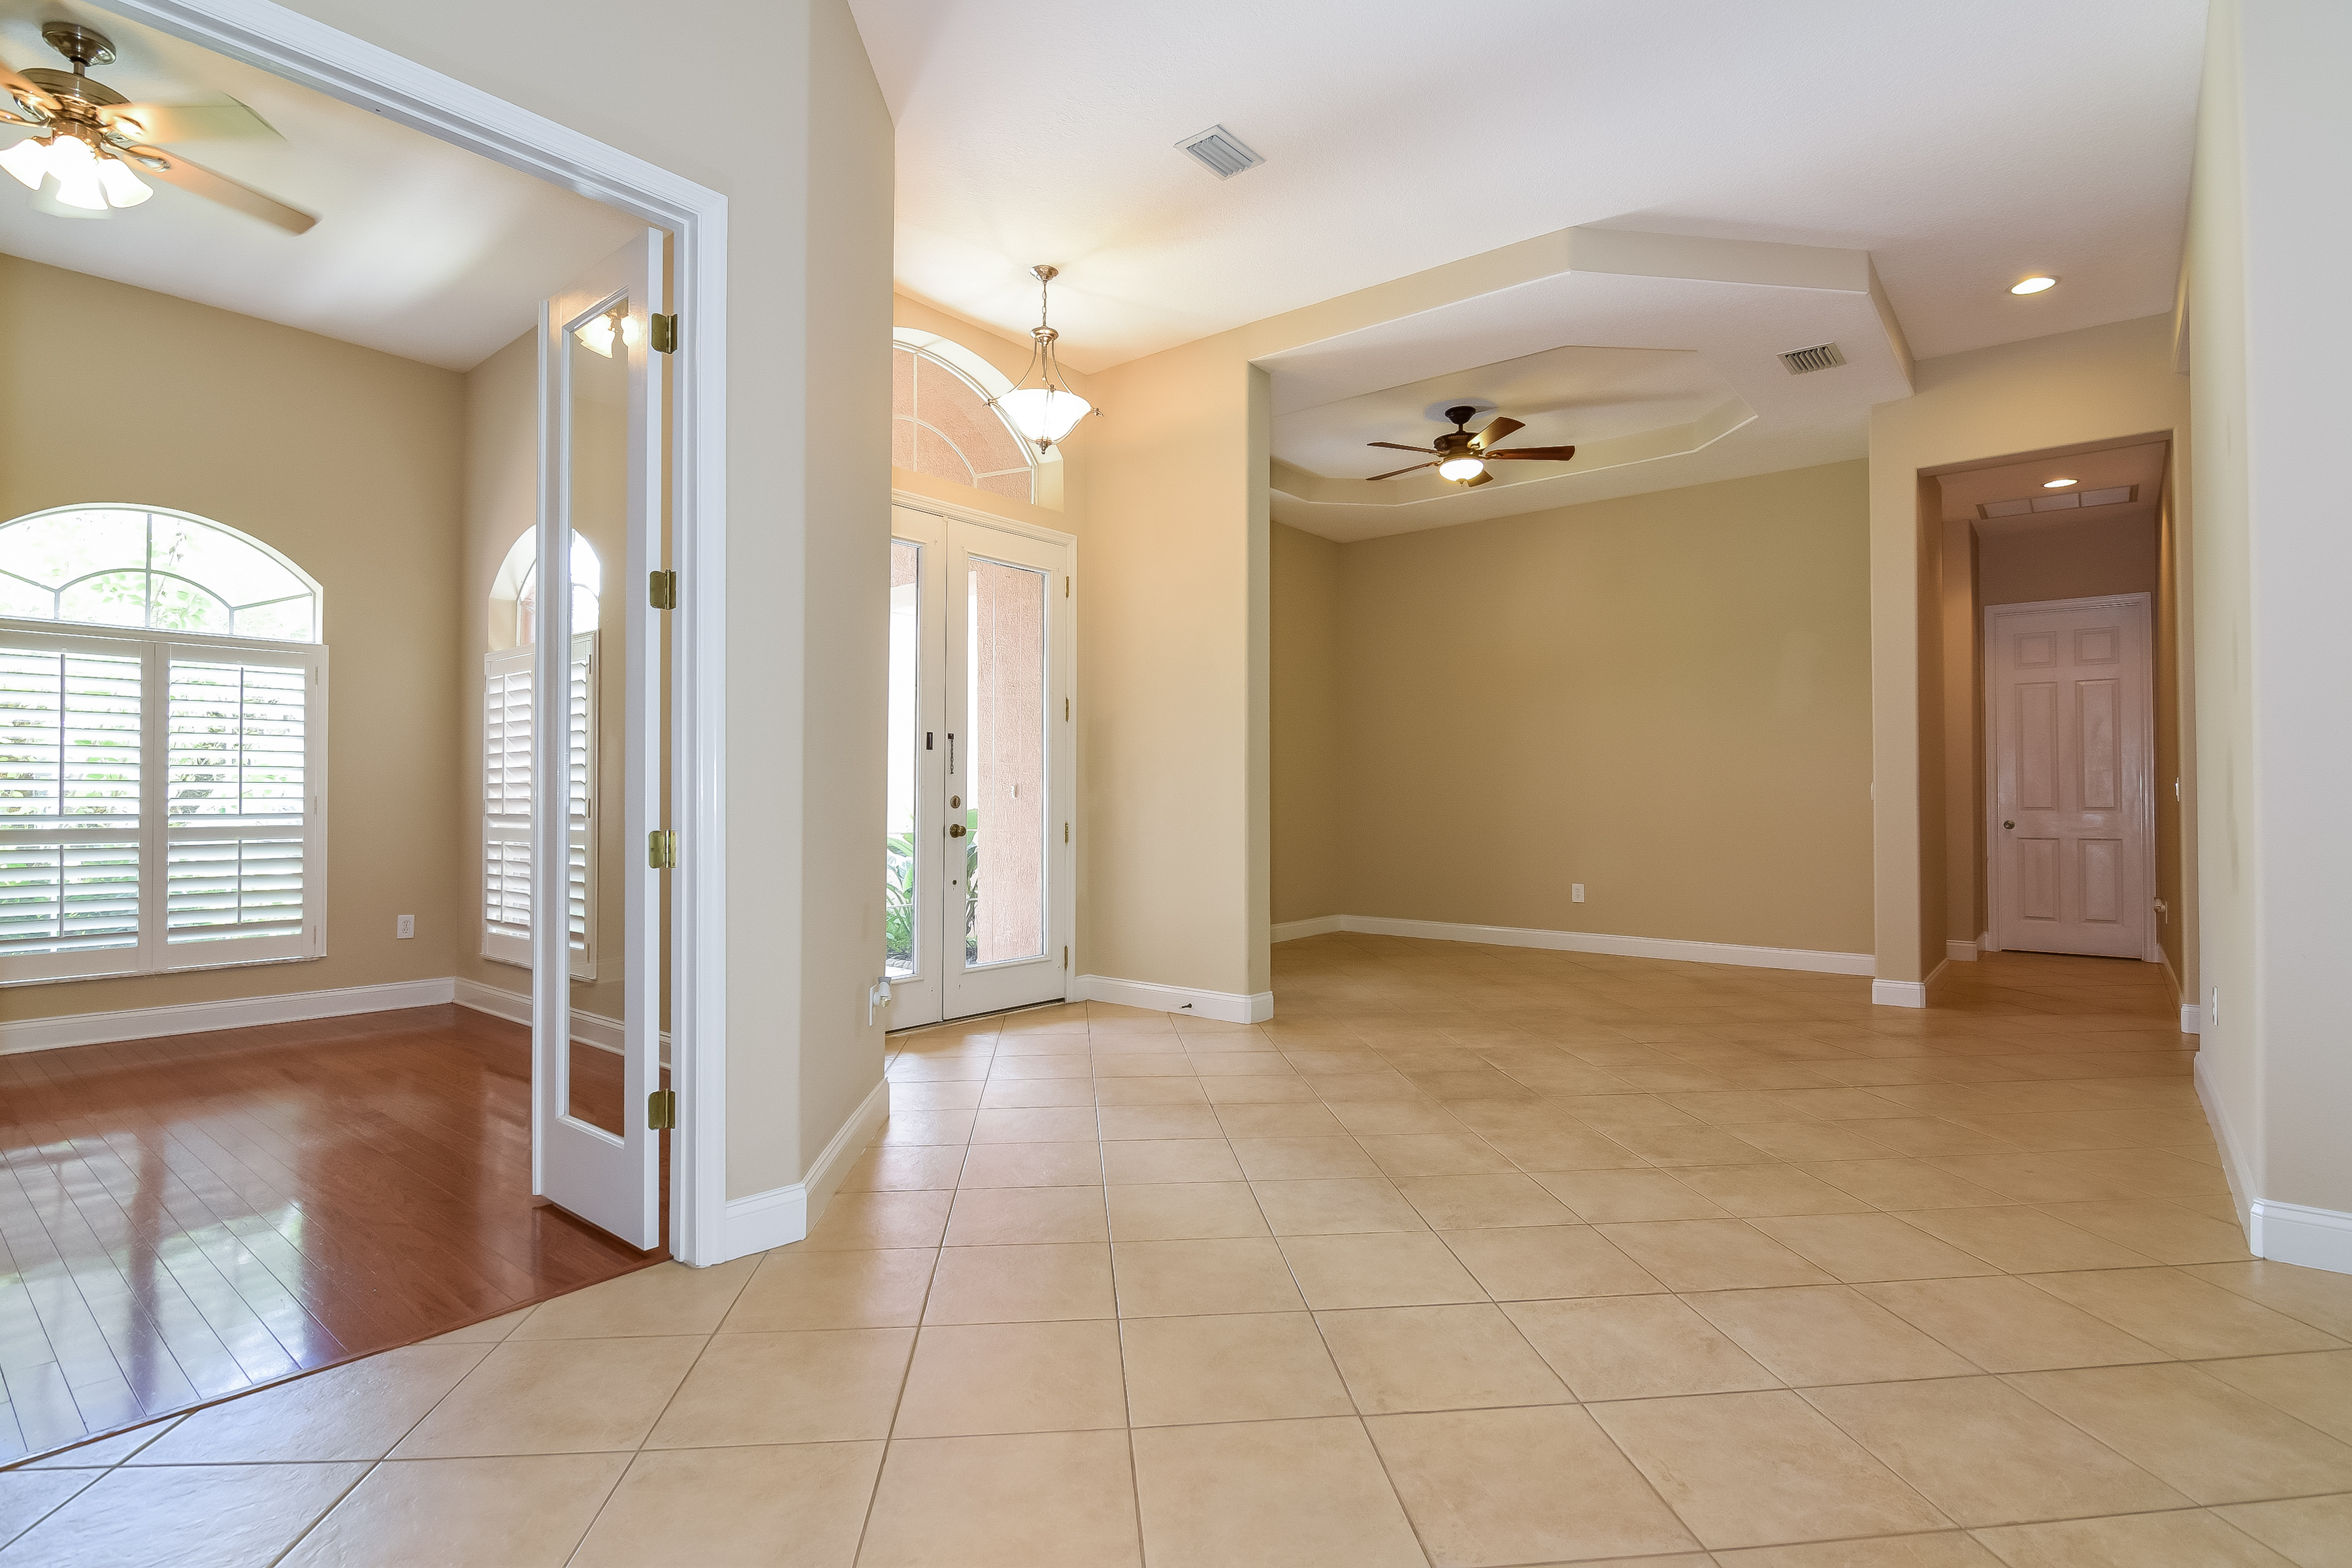 Photo of 2903 Marble Crest Dr, Land O' Lakes, FL, 34638